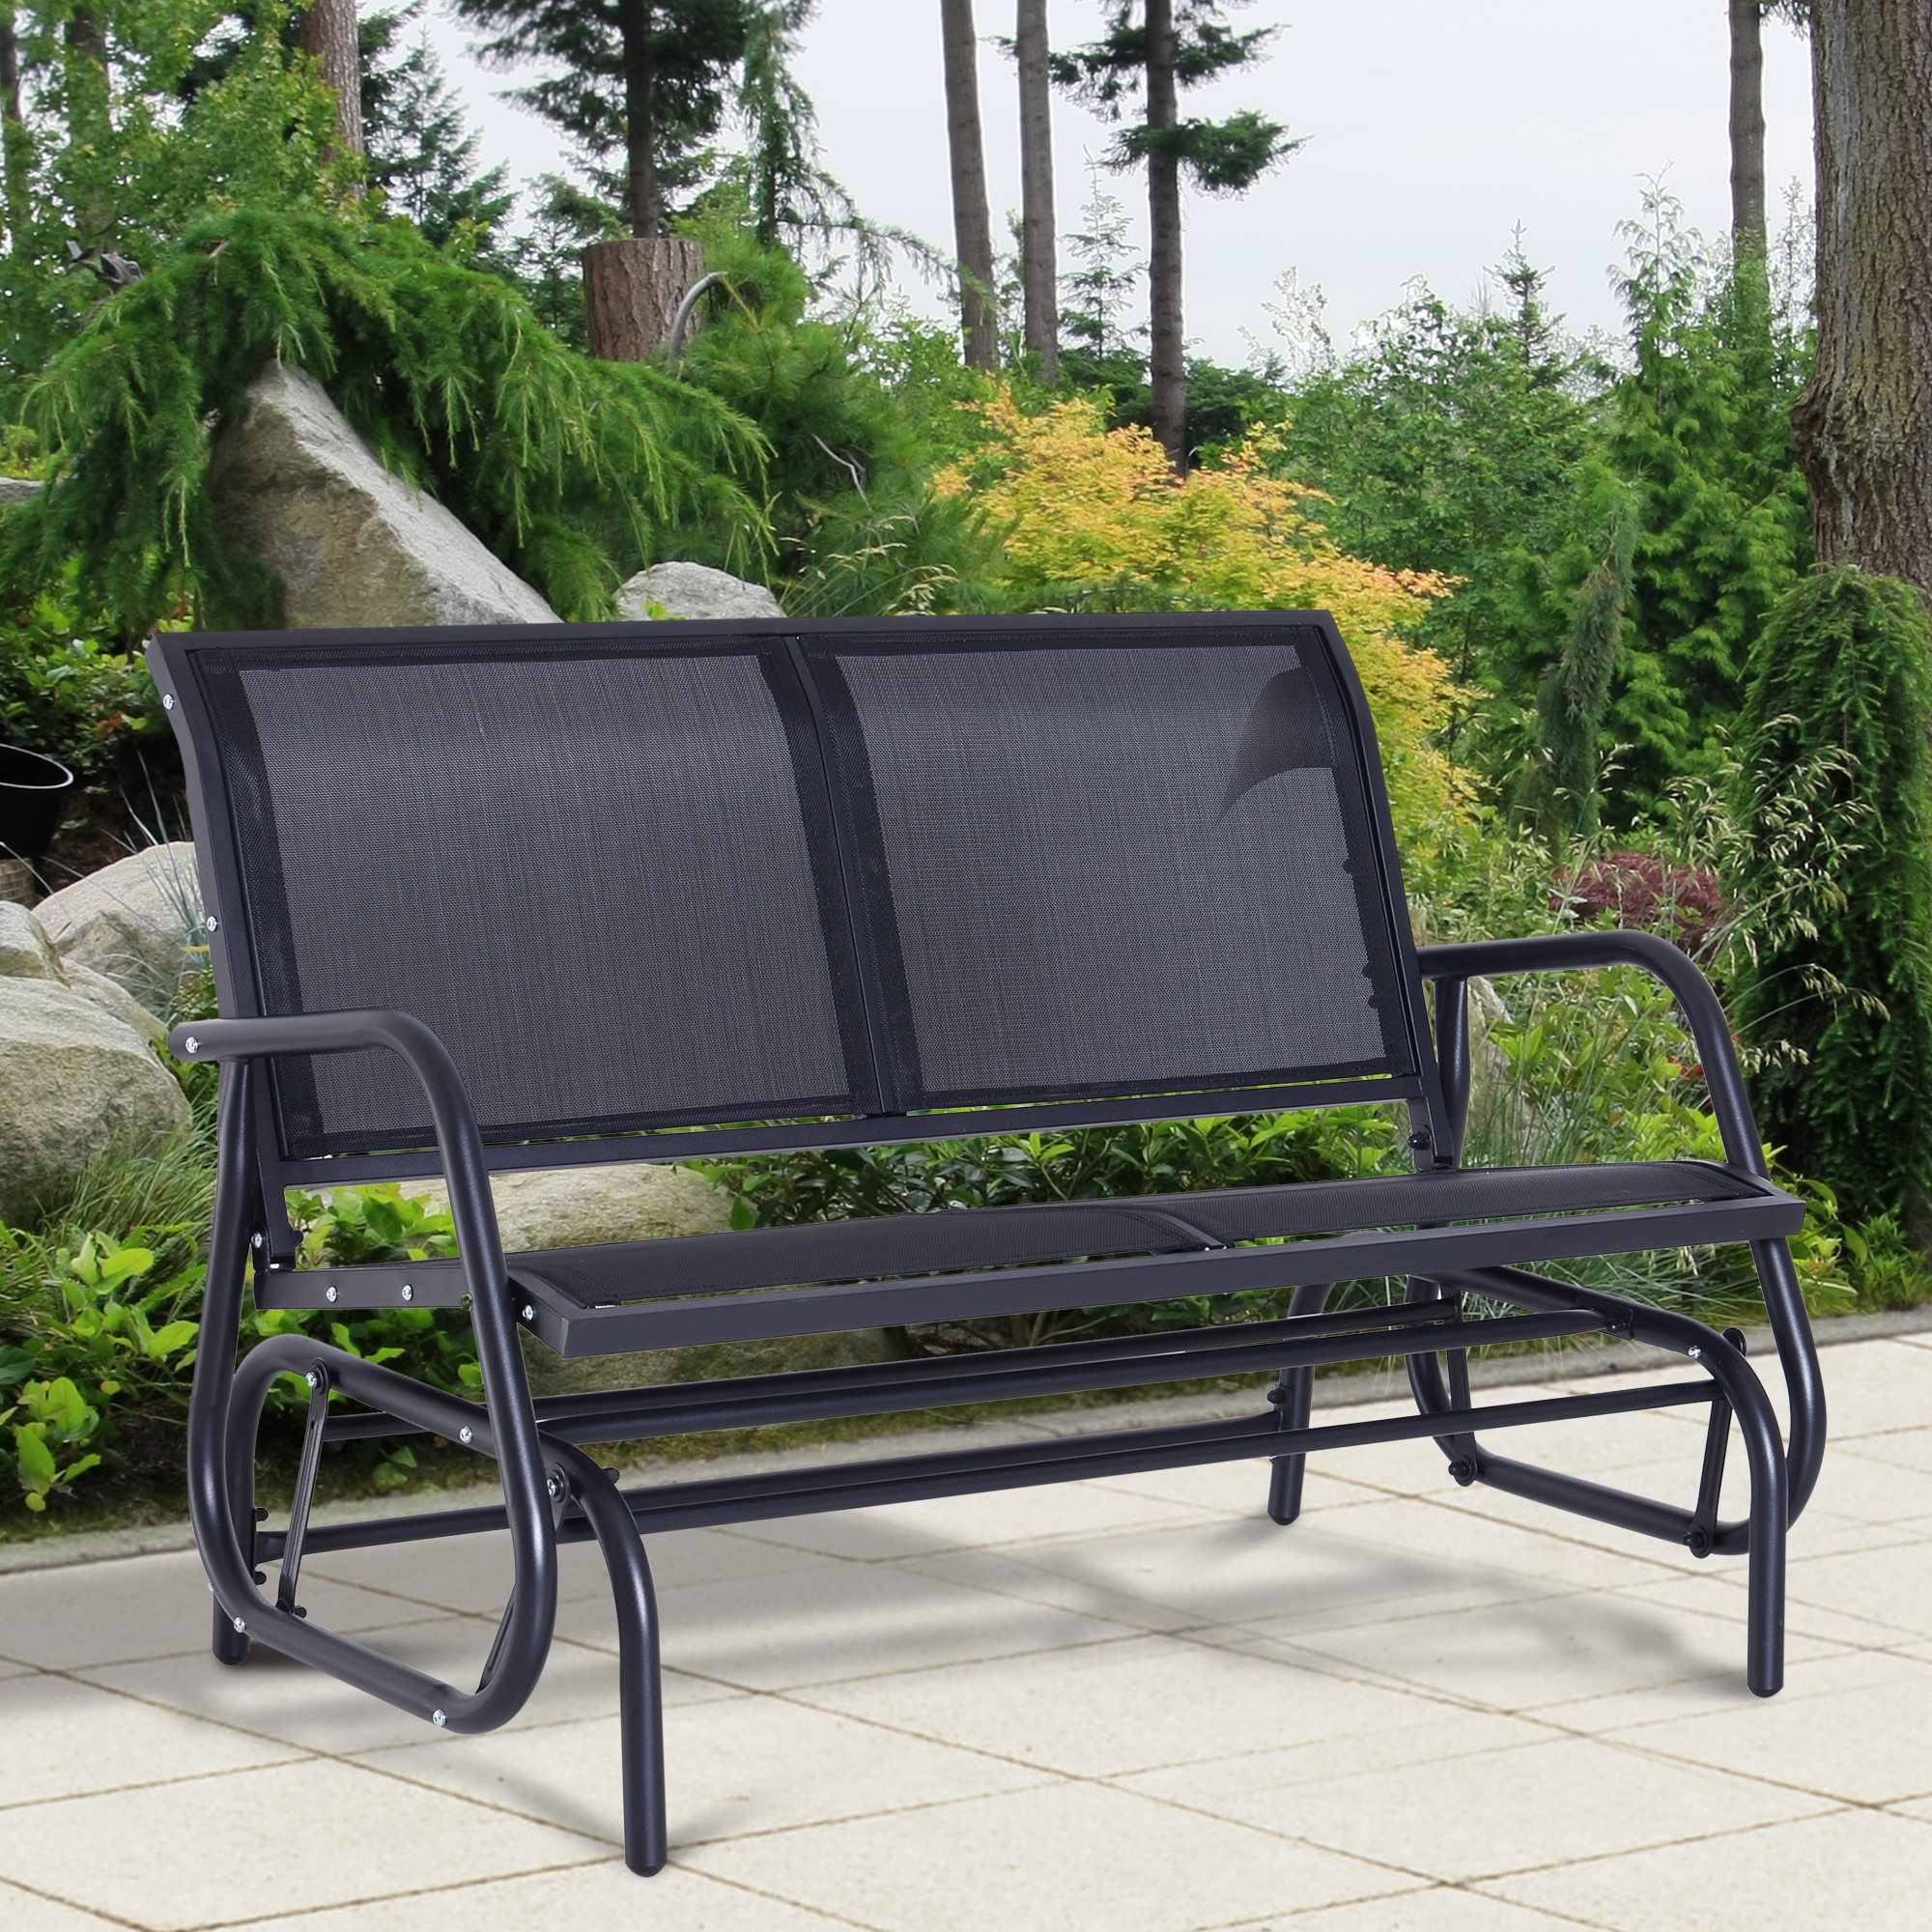 Details About Outsunny Patio Garden Glider Bench 2 Person Double Swing Chair Rocker Deck Black Regarding Aluminum Outdoor Double Glider Benches (View 14 of 25)